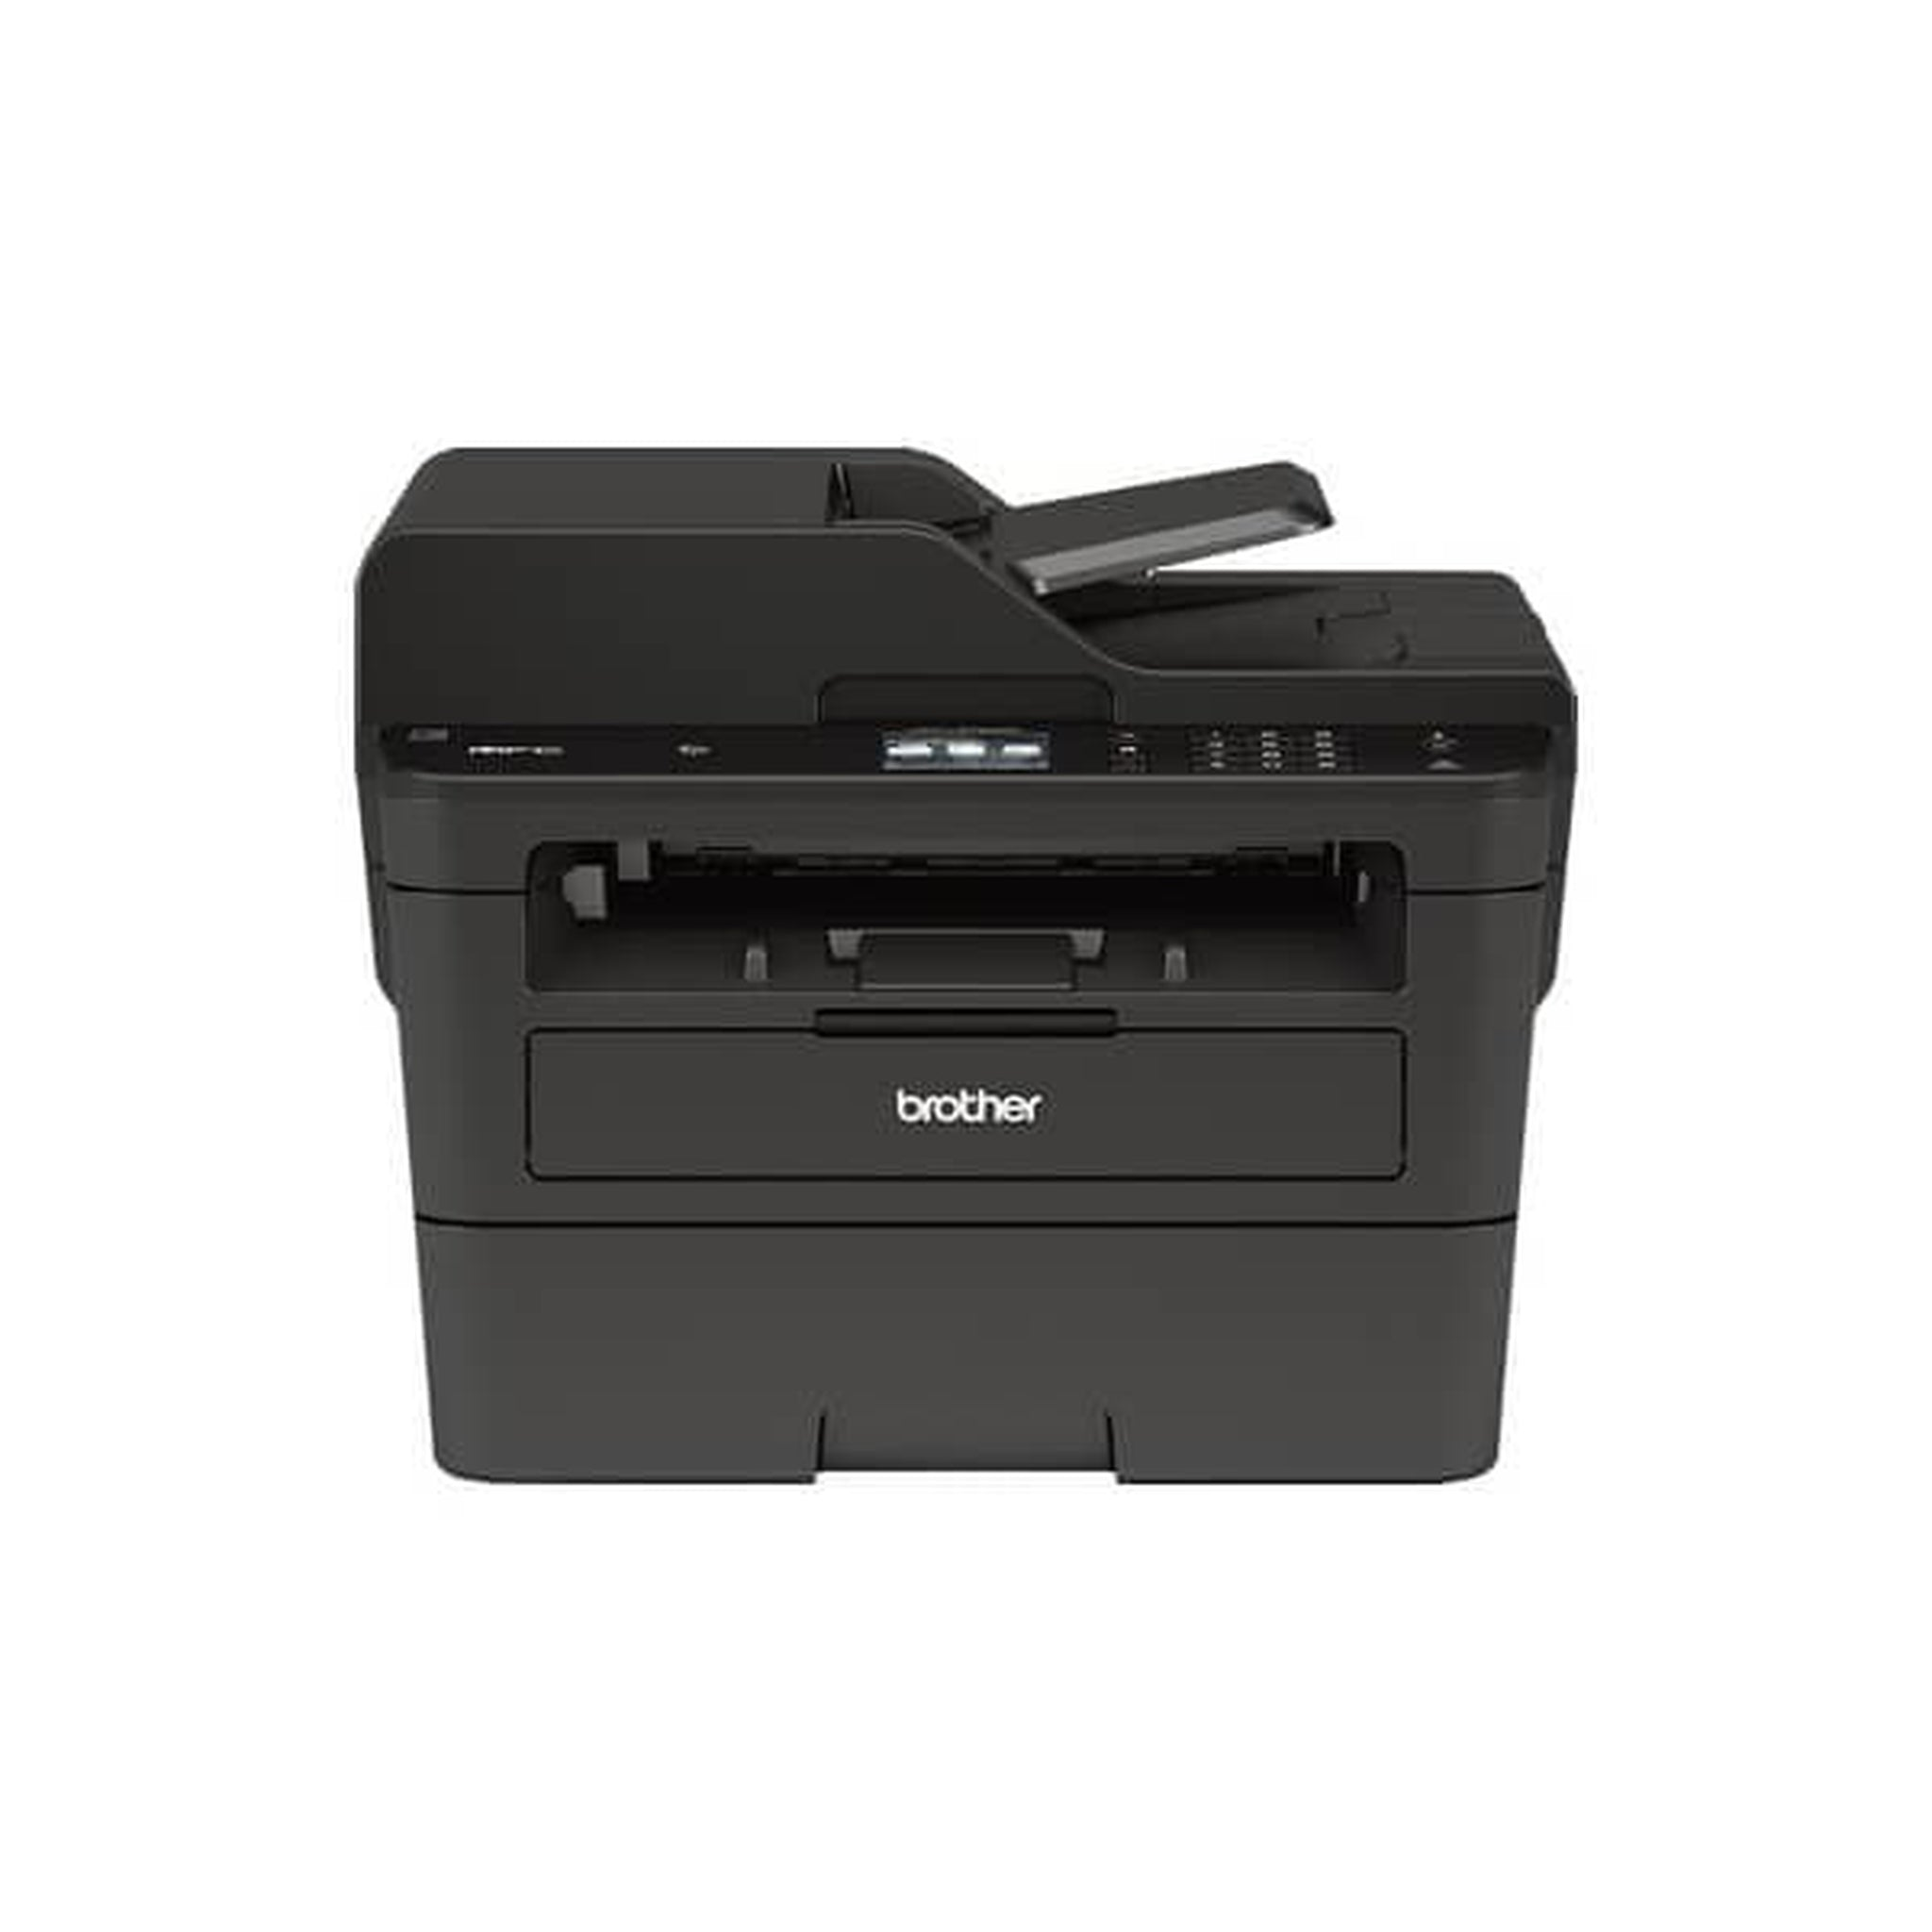 Brother MFC-L2750DW Laser Printer - Choice Computer Technologies